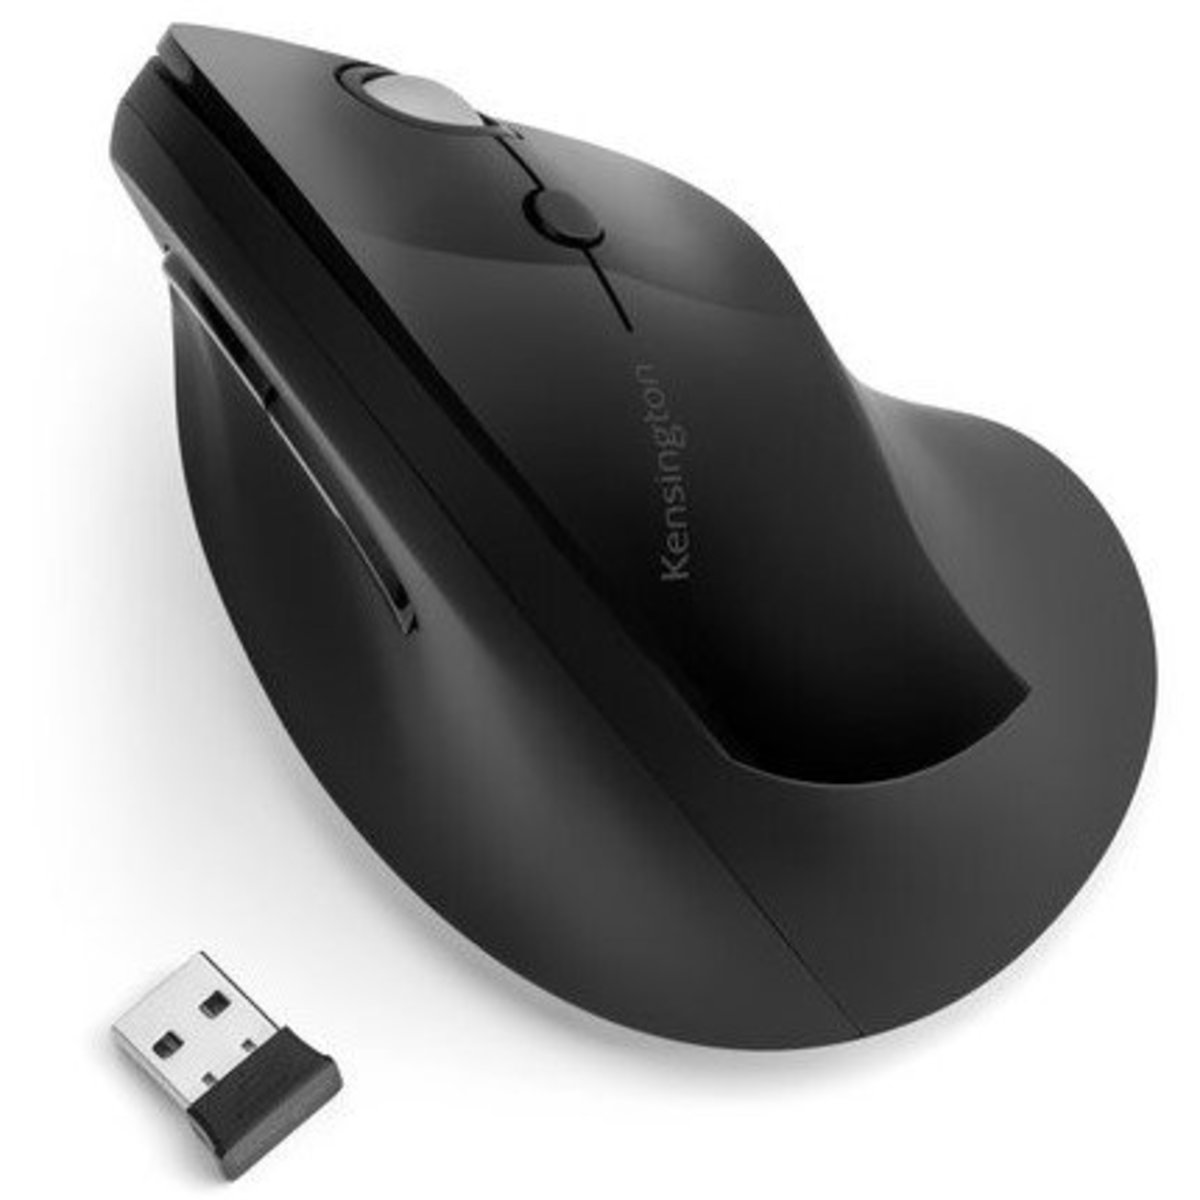 Pro Fit Ergo Vertical Wireless Mouse